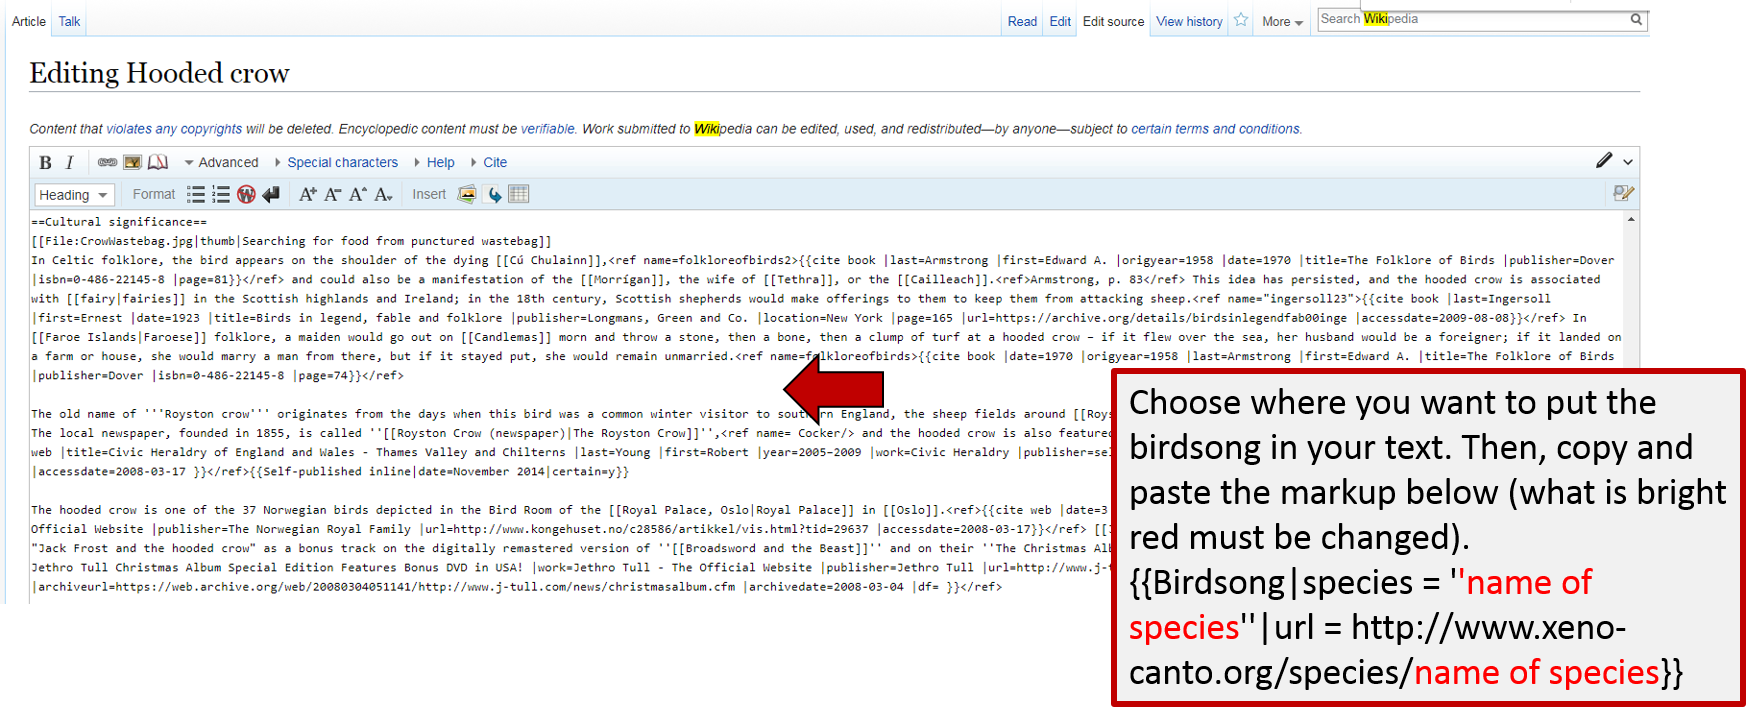 Screenshot of how to add the wiki markup to add birdsong to an article